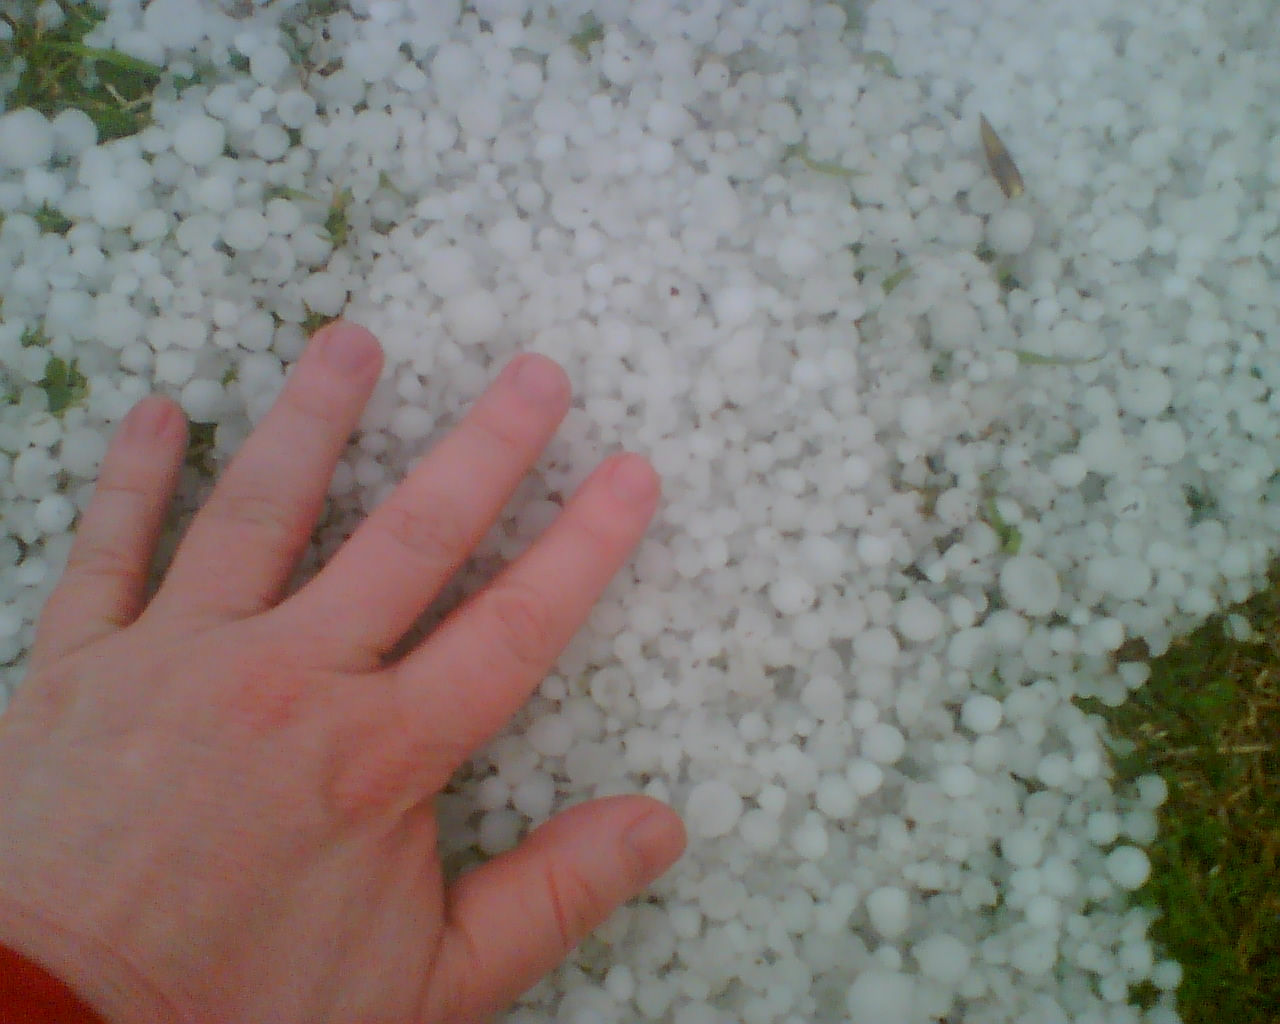 Hail Storm in Nickson Street, Surry Hills